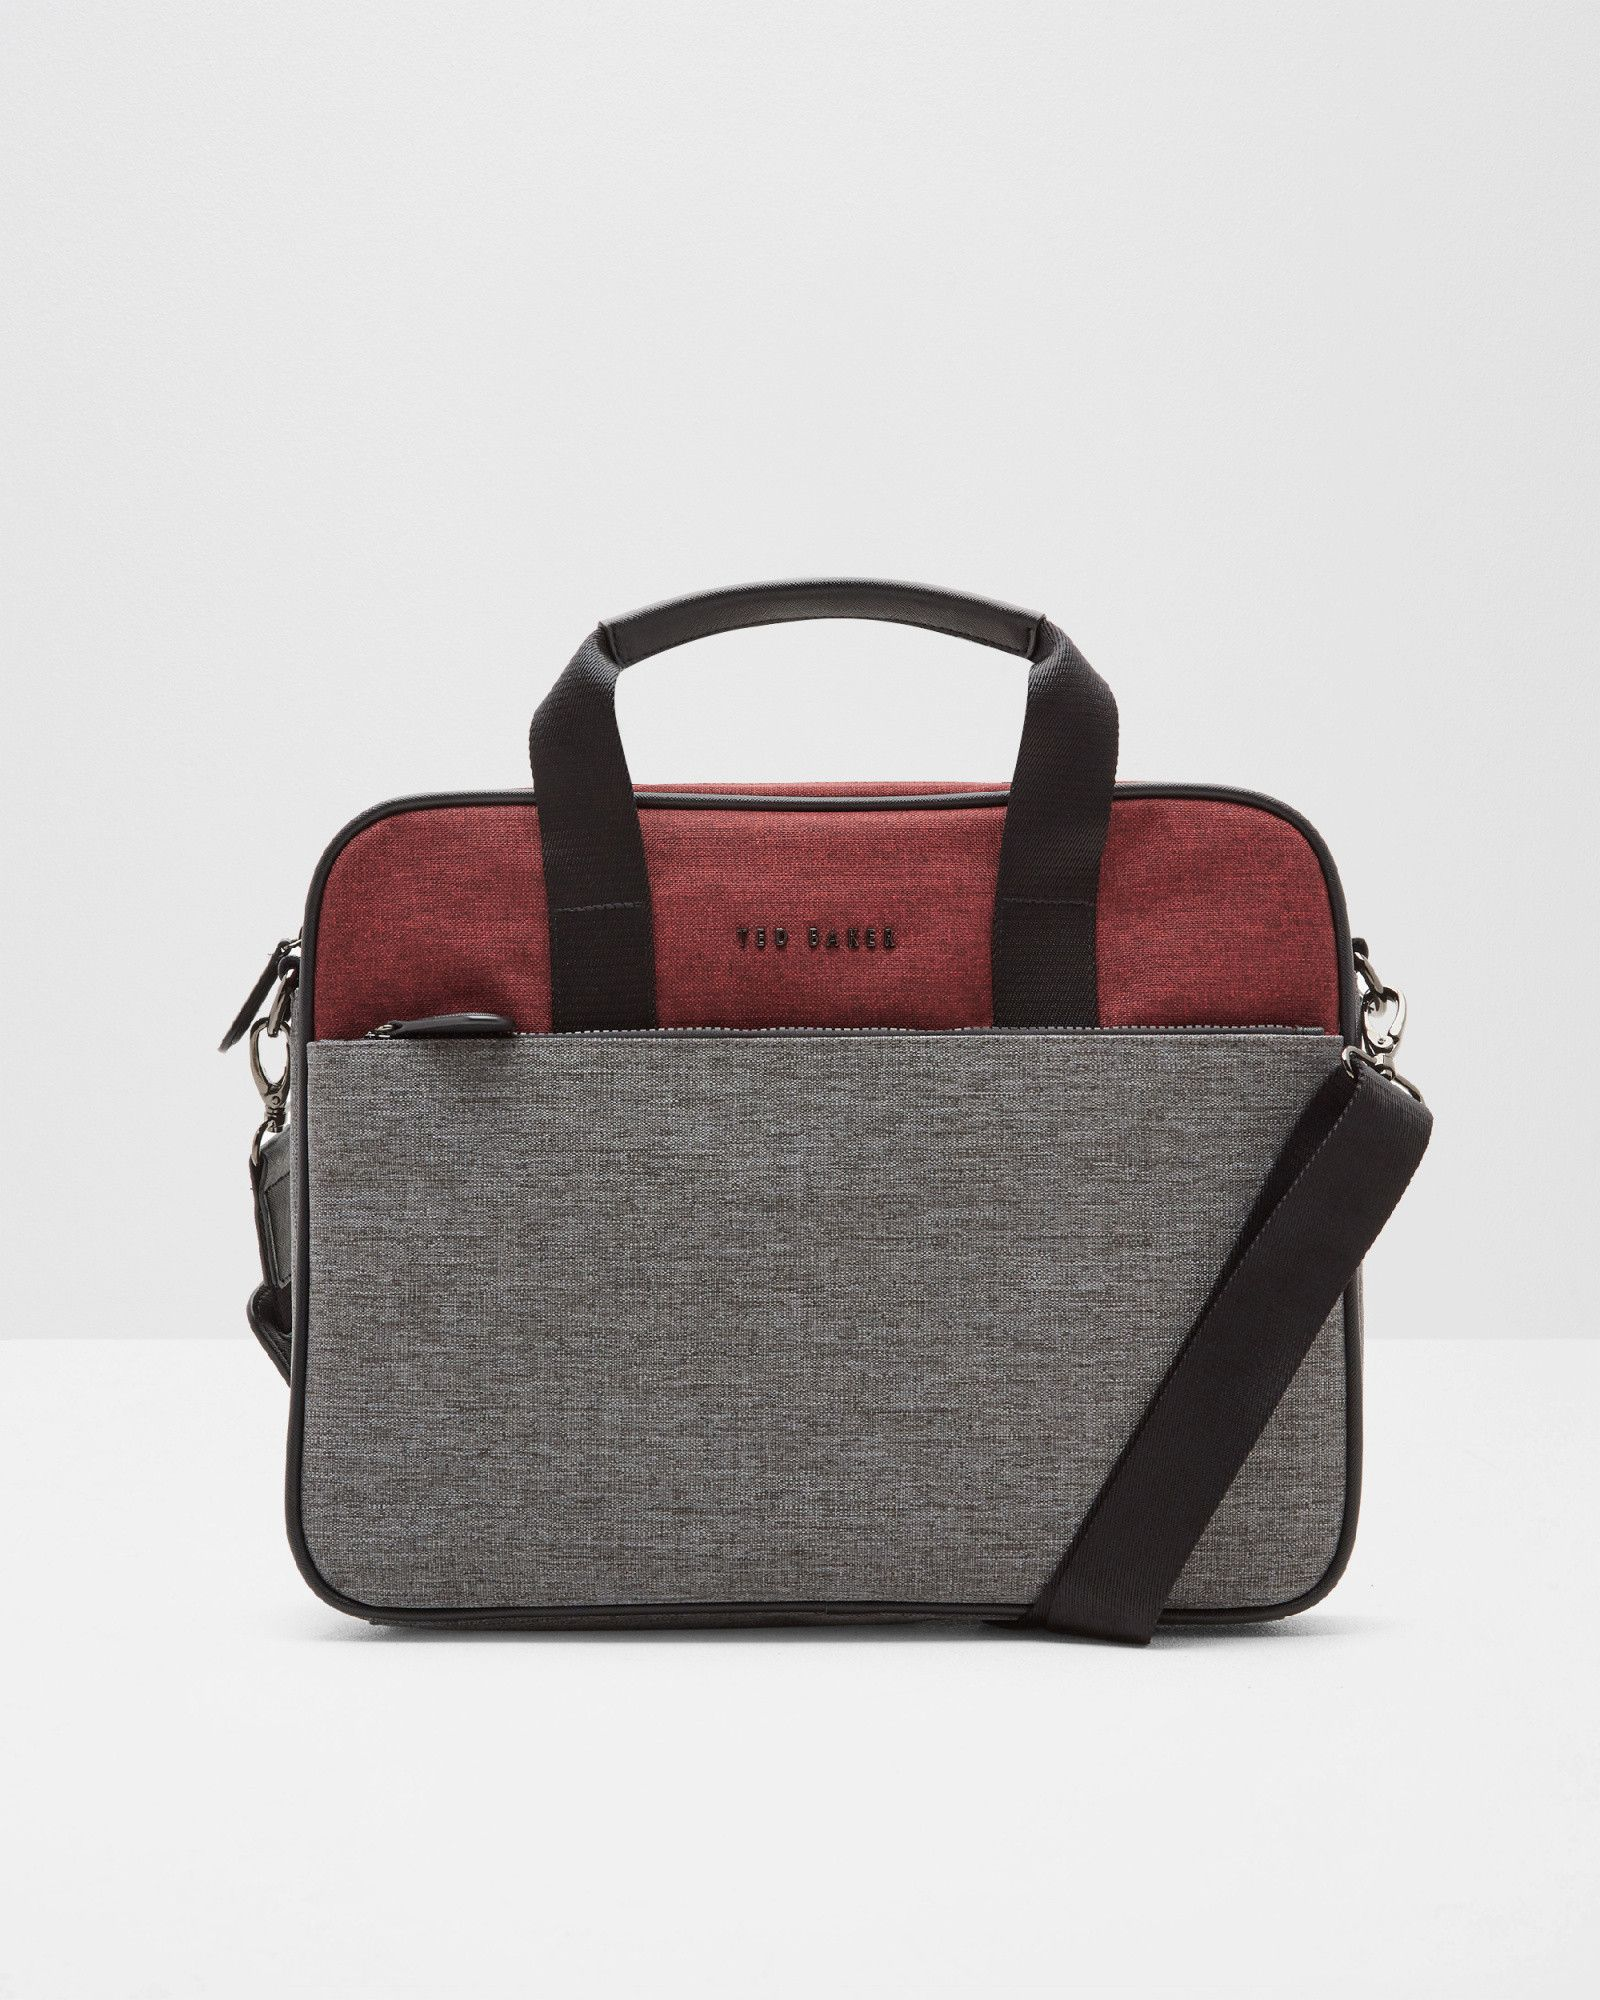 Two-tone document bag in red and grey by Ted Baker | Accessories ...